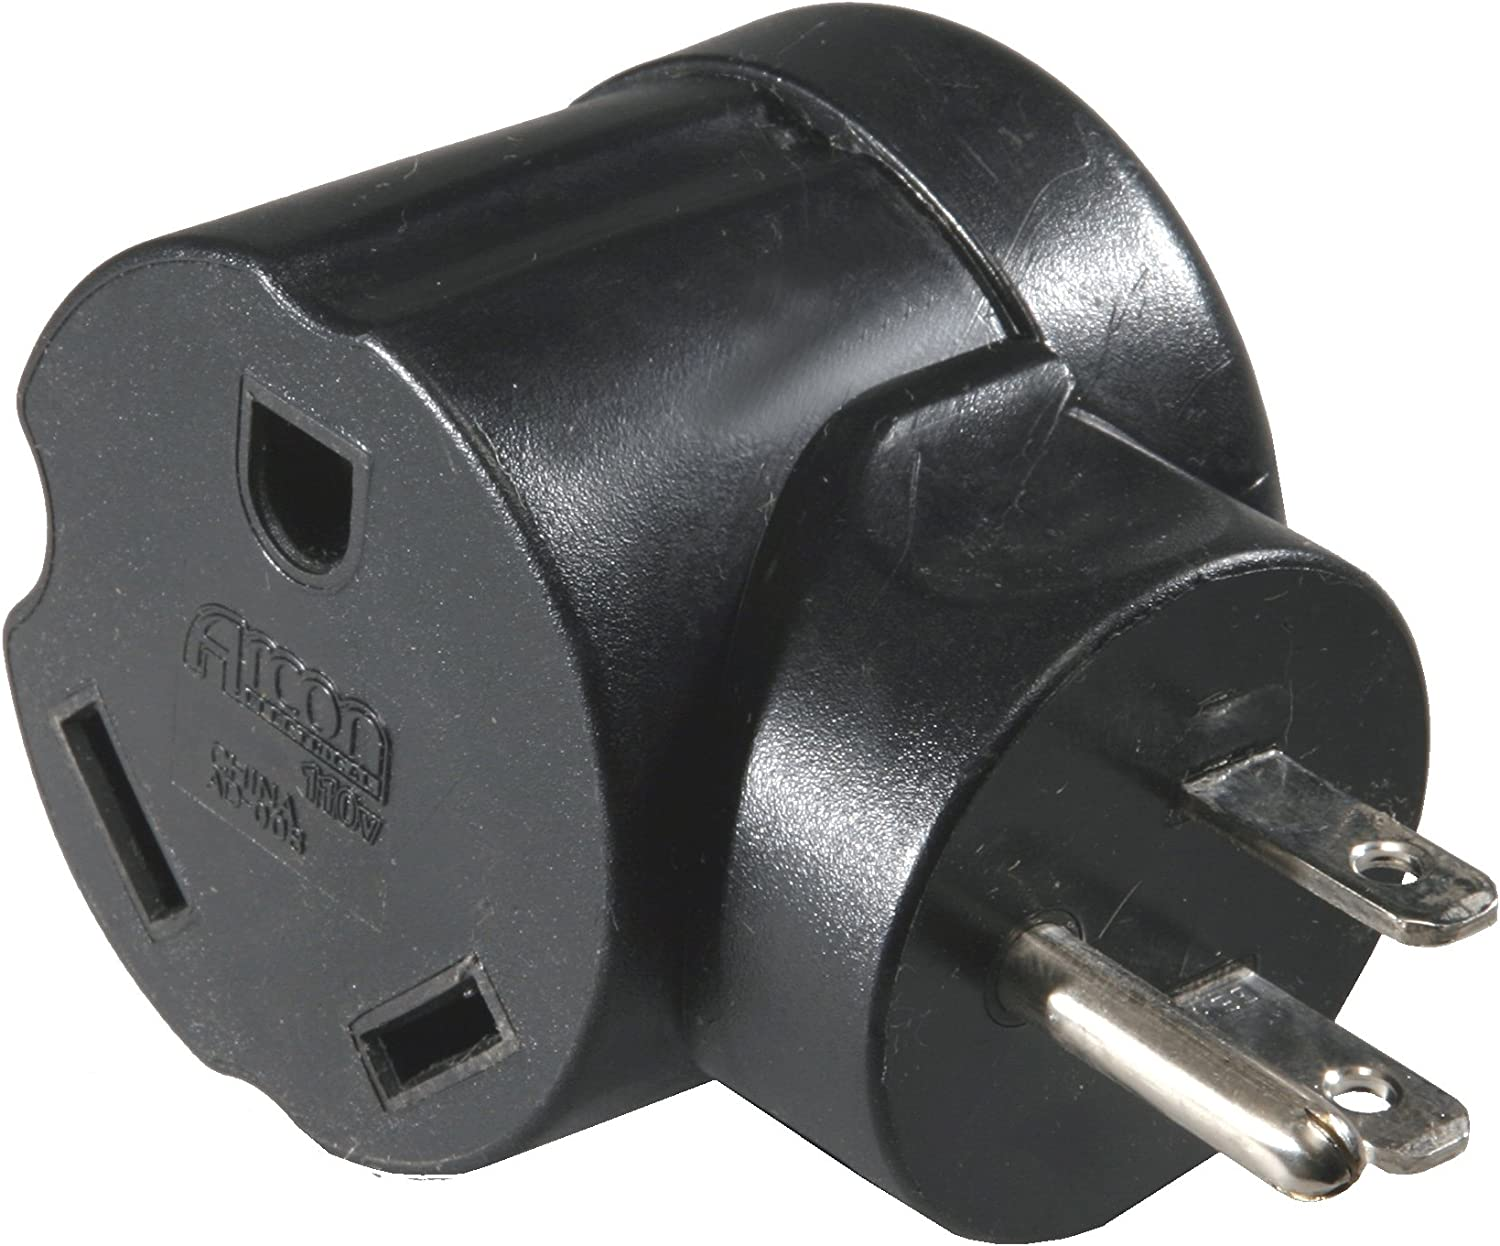 Arcon 14081 Generator Power Adapter Popular shop is the lowest price Discount mail order challenge to 30-Amp Female 15-Amp Male